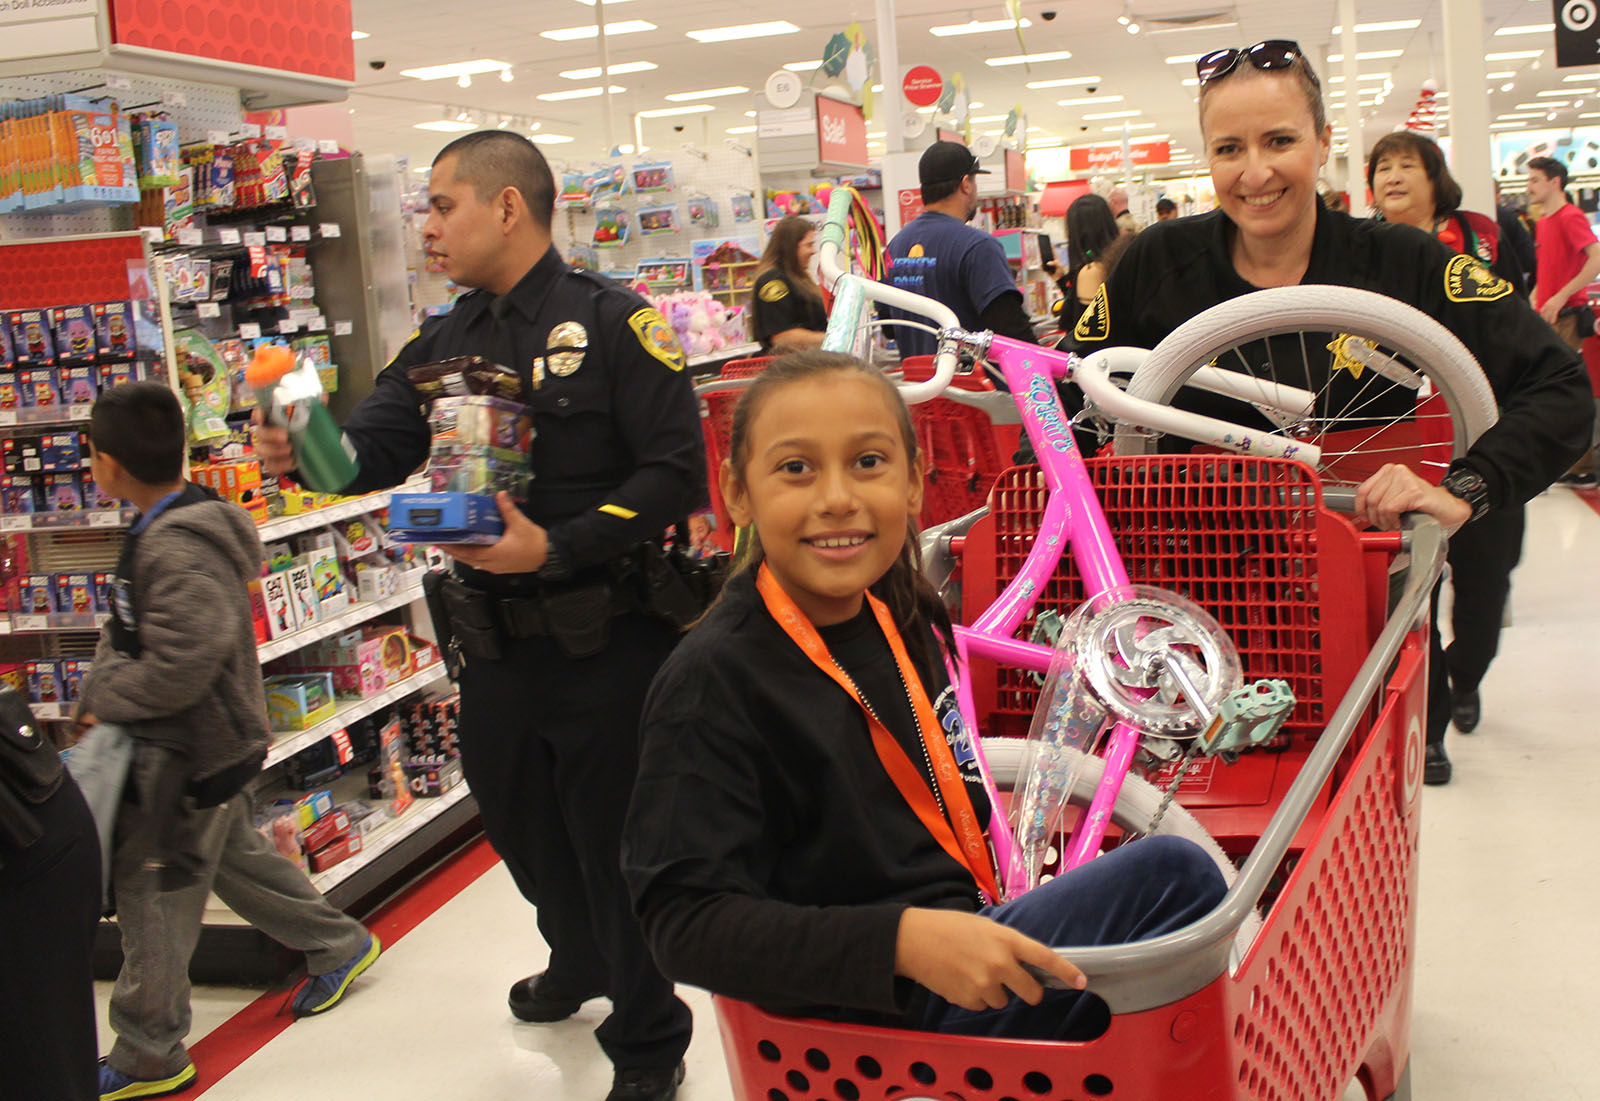 More than 300 children were treated to a shopping spree with local law enforcement.